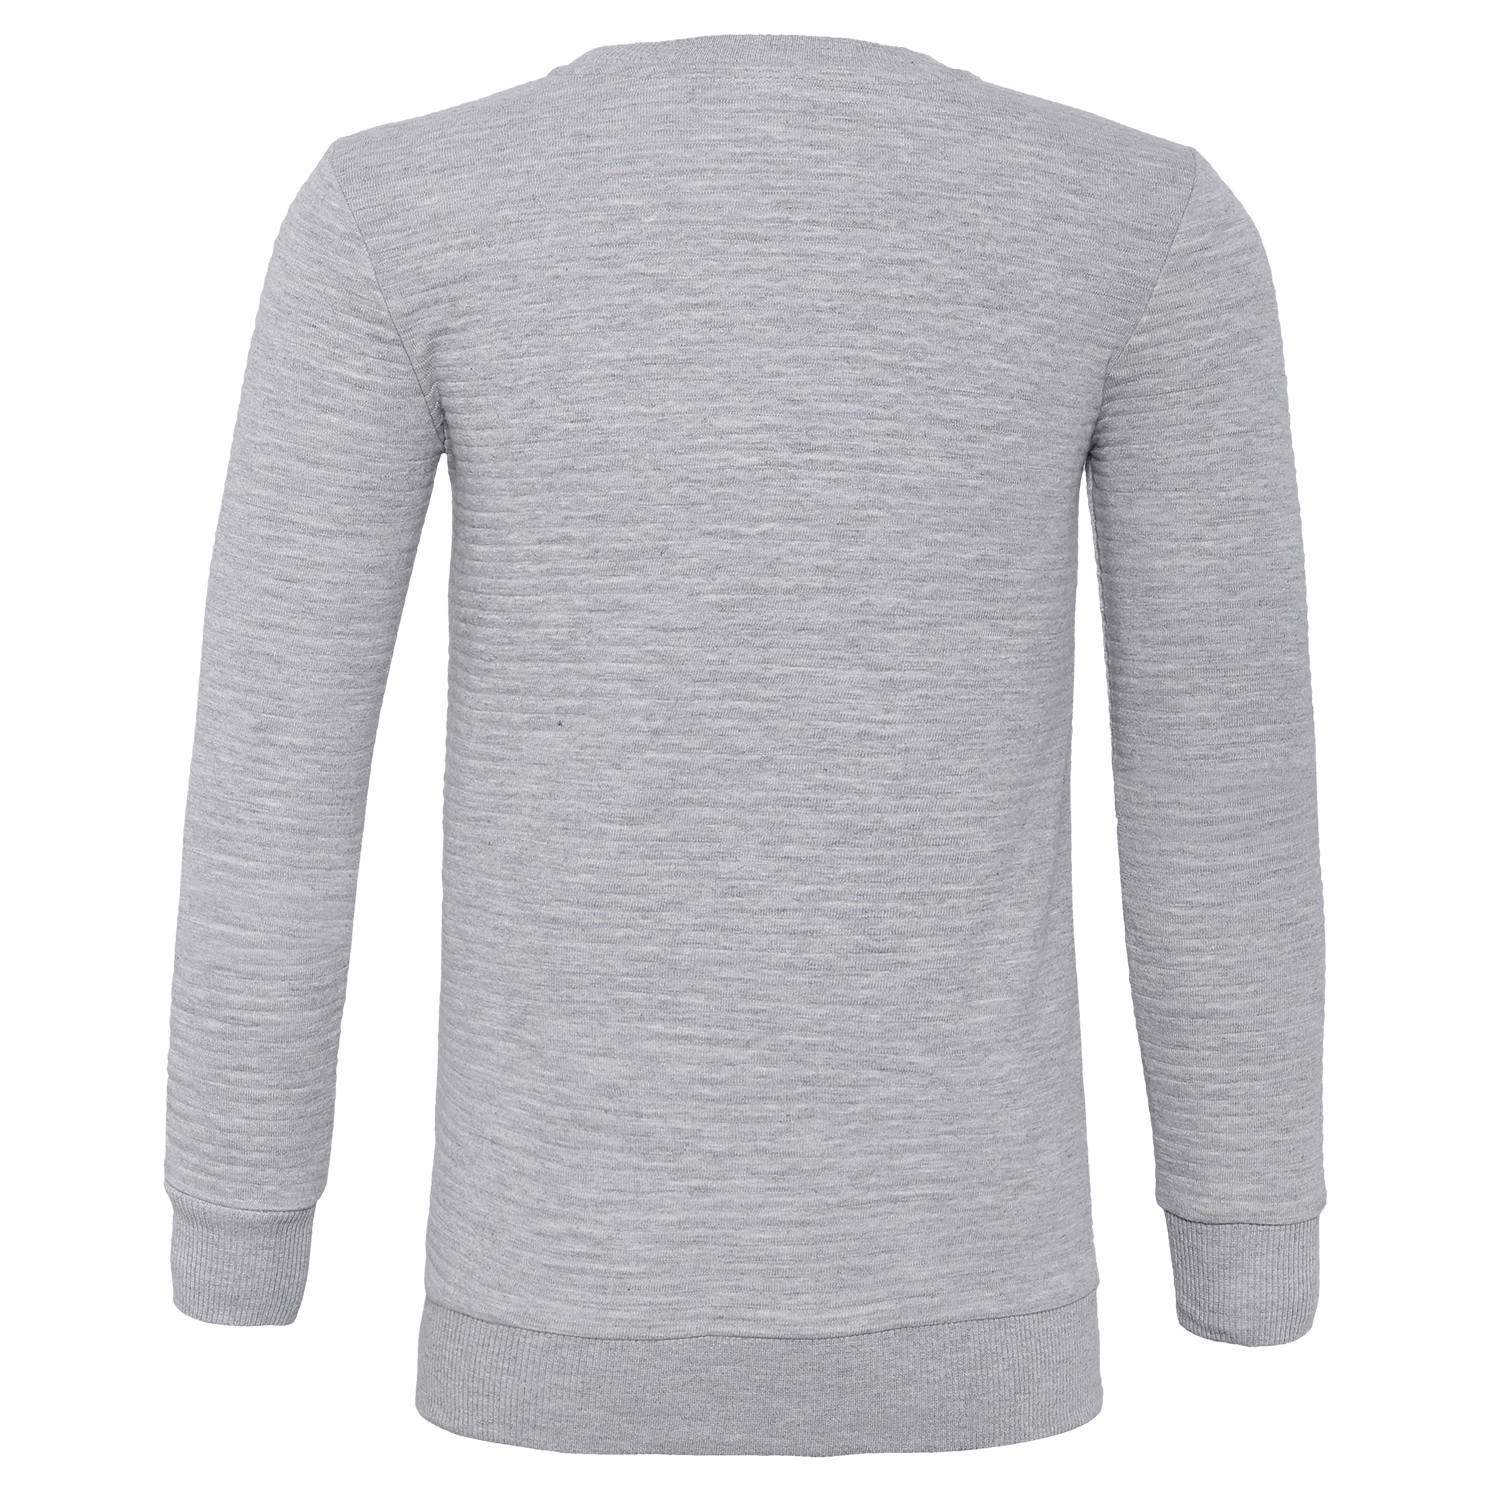 Boys 'Super' Grey SweatShirt